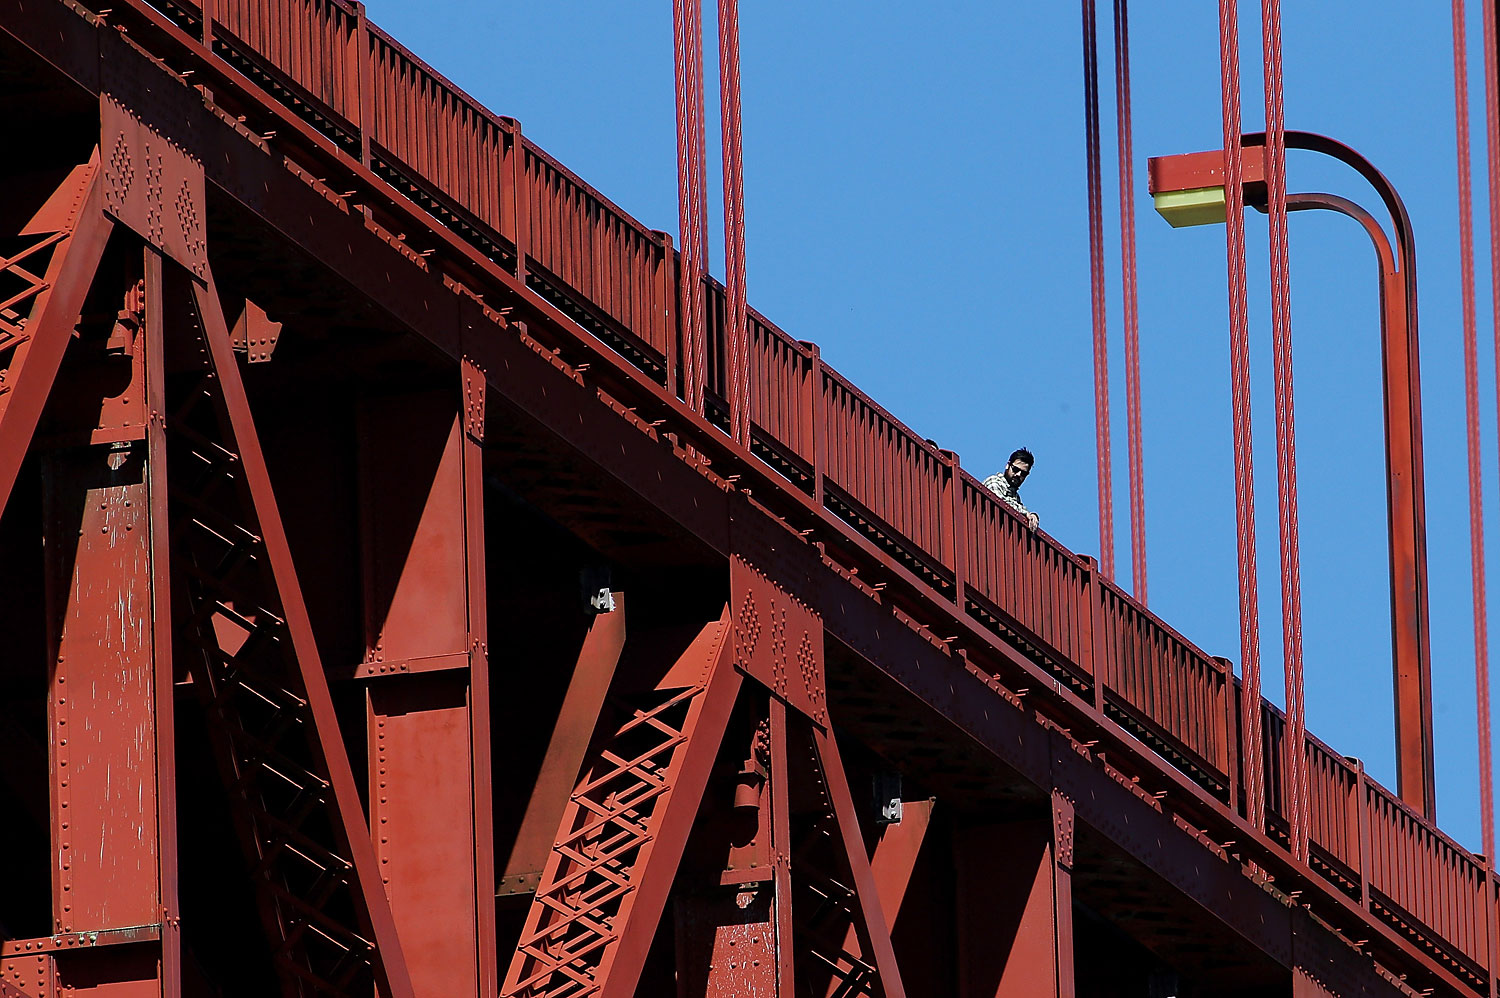 A visitor looks over the railing on the Golden Gate Bridge on March 12, 2014 in San Francisco.